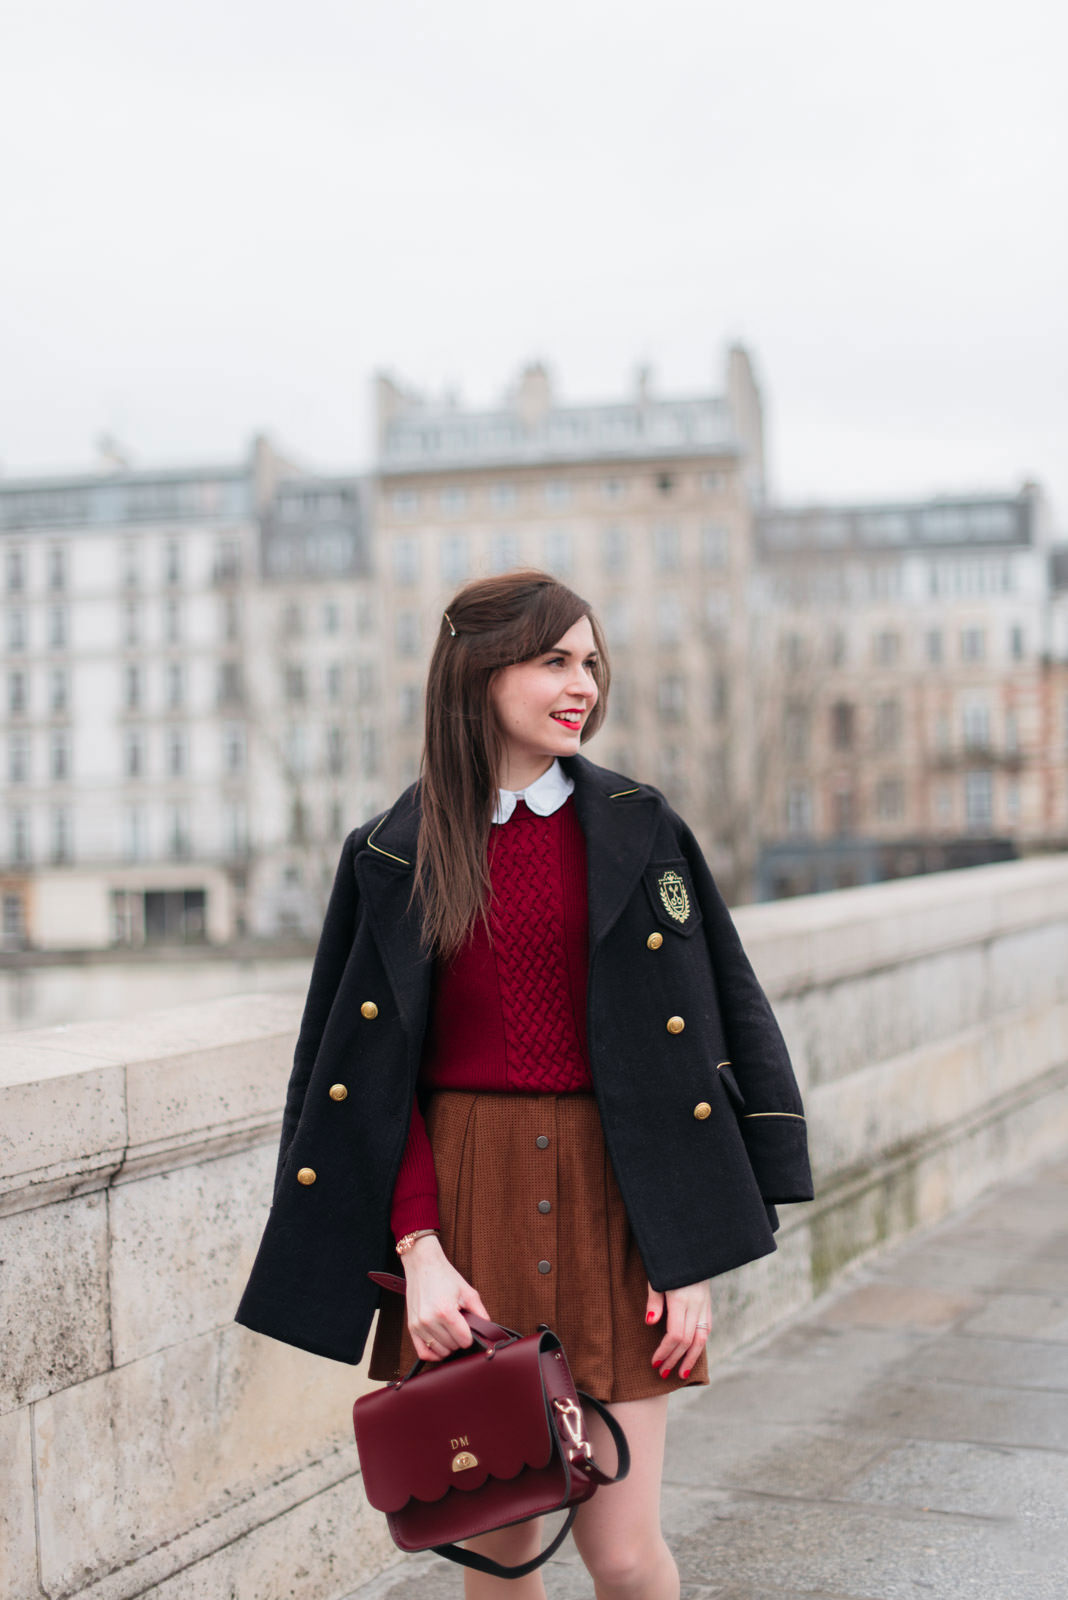 Blog-Mode-And-The-City-Looks-Le-reconfort-des-basiques-5